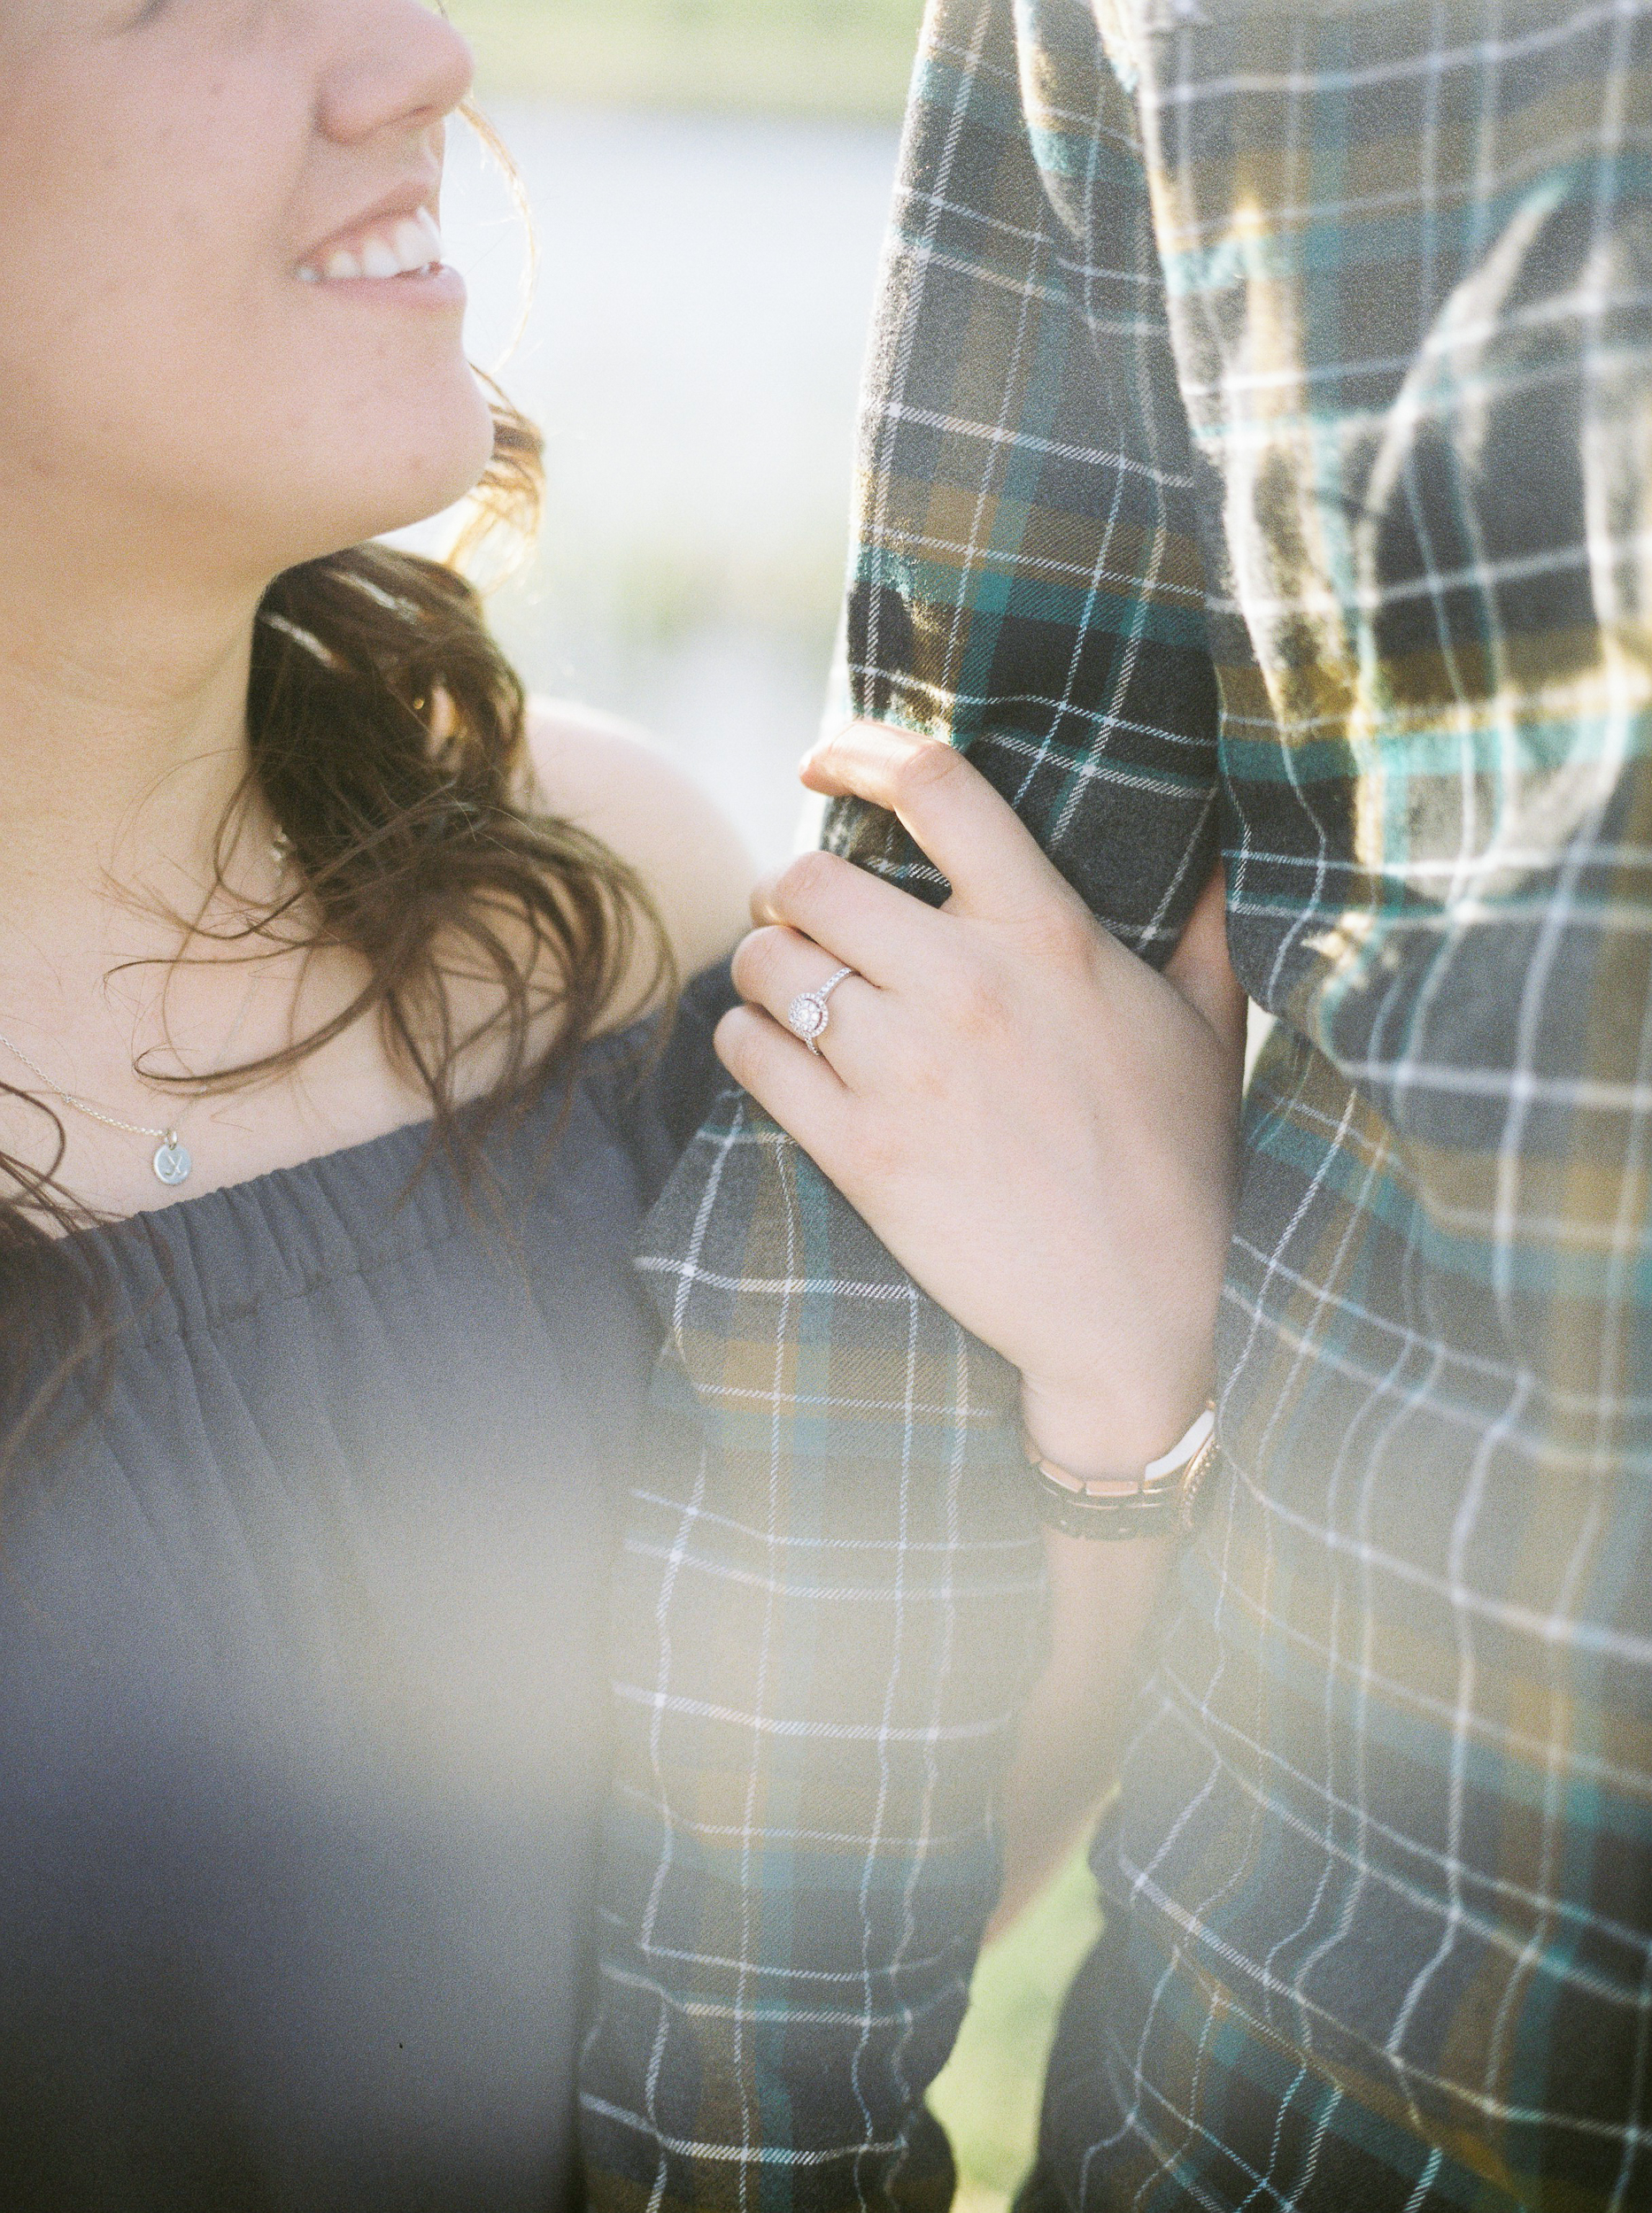 Nicholas Sparks inspired couples photos - 5 Reasons Why You Should Have Engagement Photos Taken - Romantic Engagement Session - Couples Session pose ideas - Canadian Wedding Photography - Canadian Wedding Photographer - Manitoba Wedding Photographer…